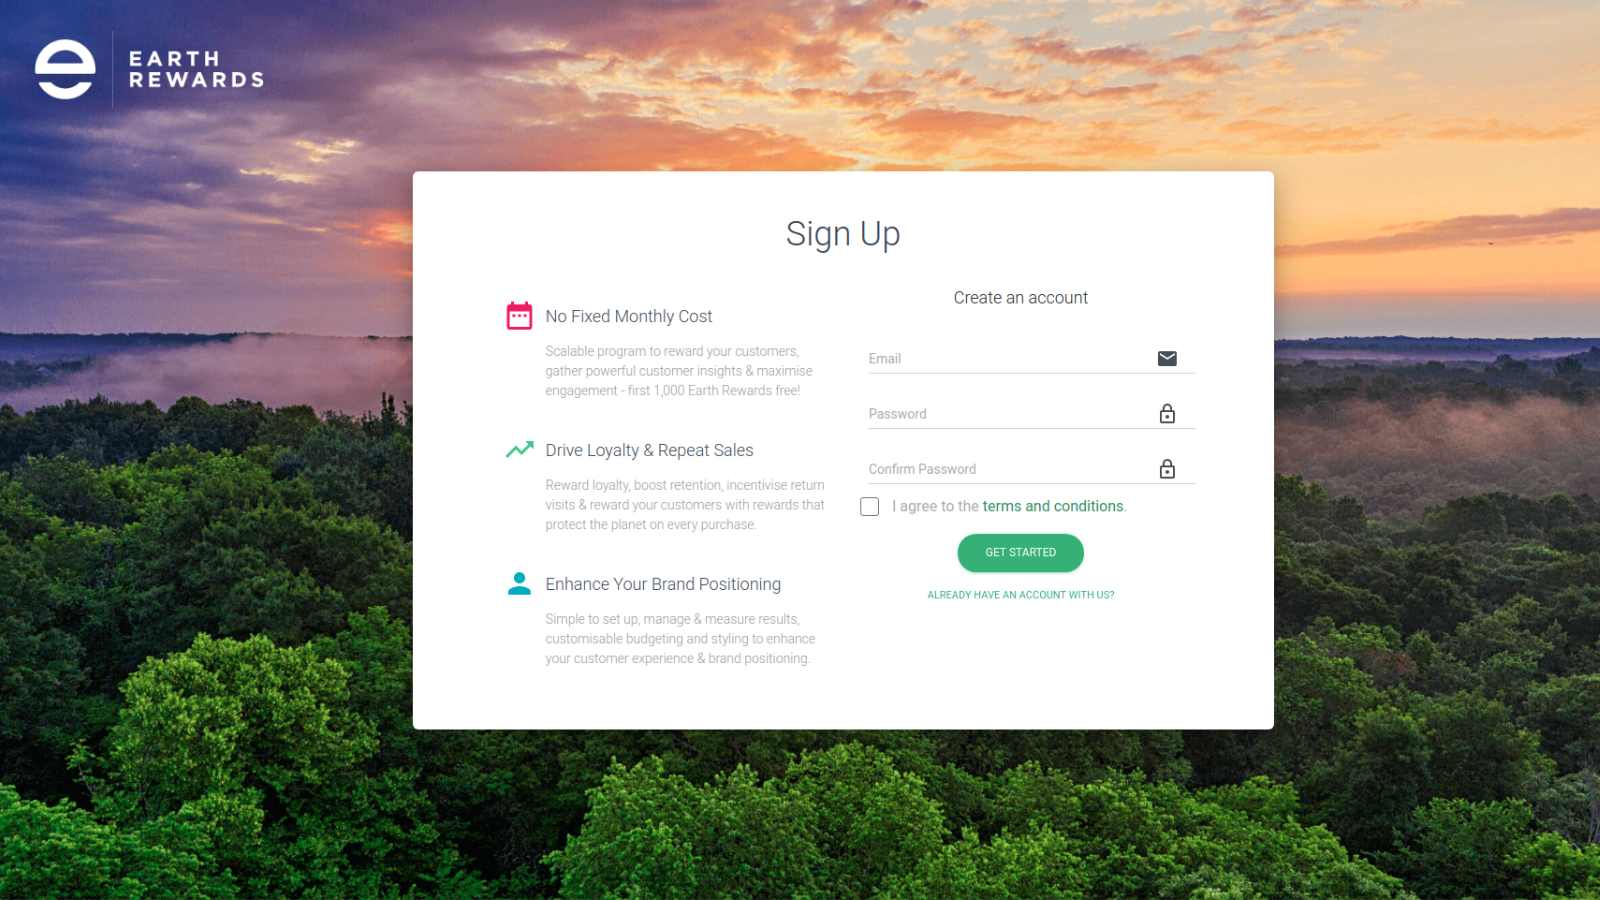 Sign up and get started with Earth Rewards today!